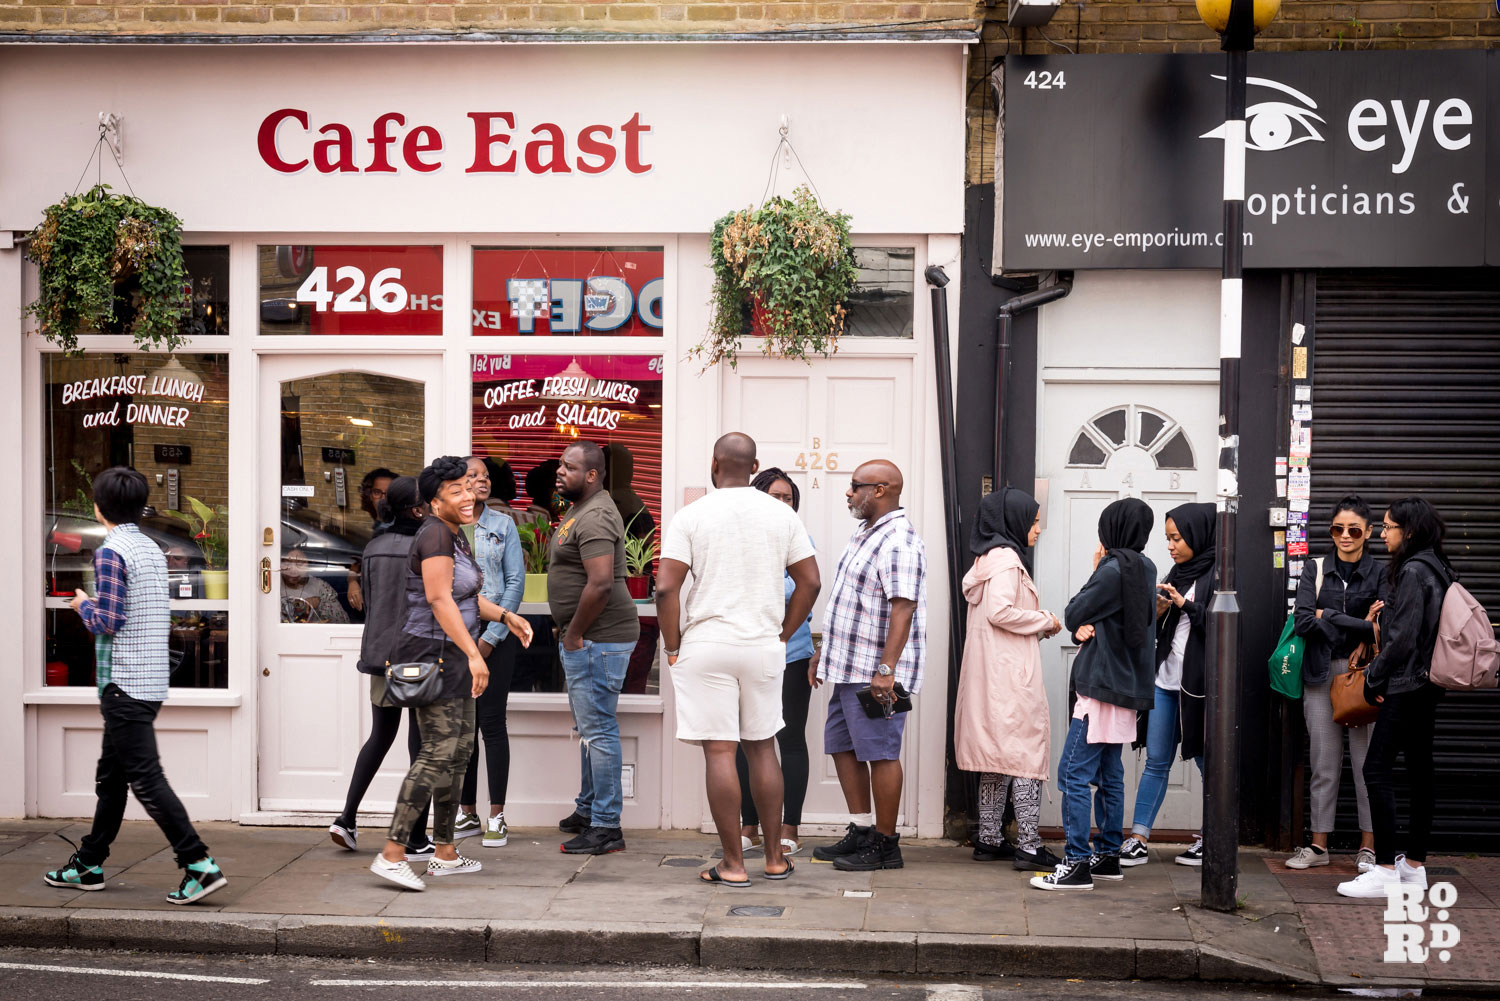 Queue outside cafe east roman road